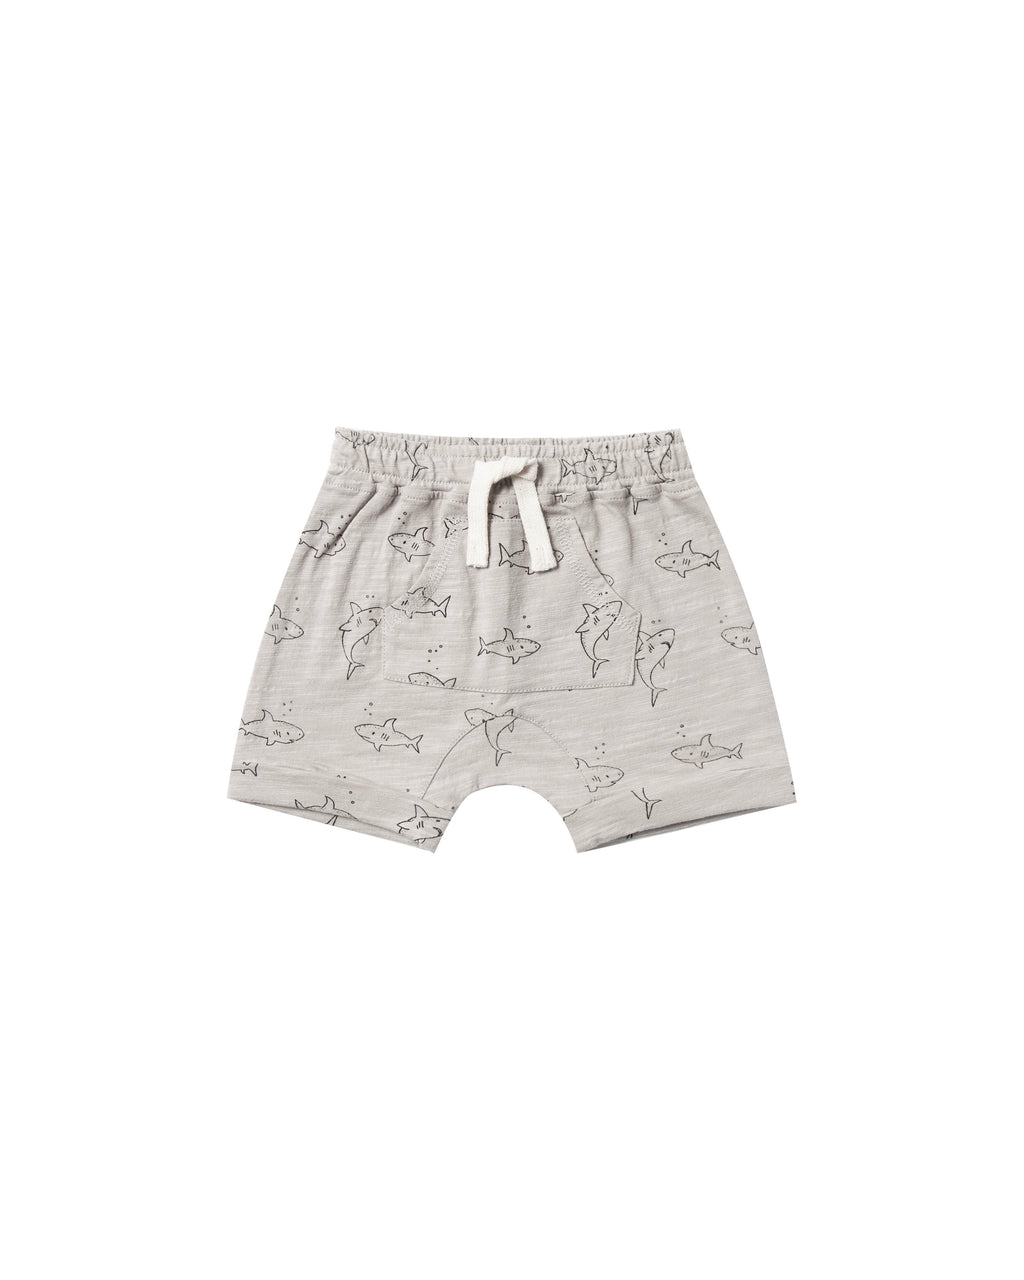 Rylee + Cru - Hometown Collection - Shark Short